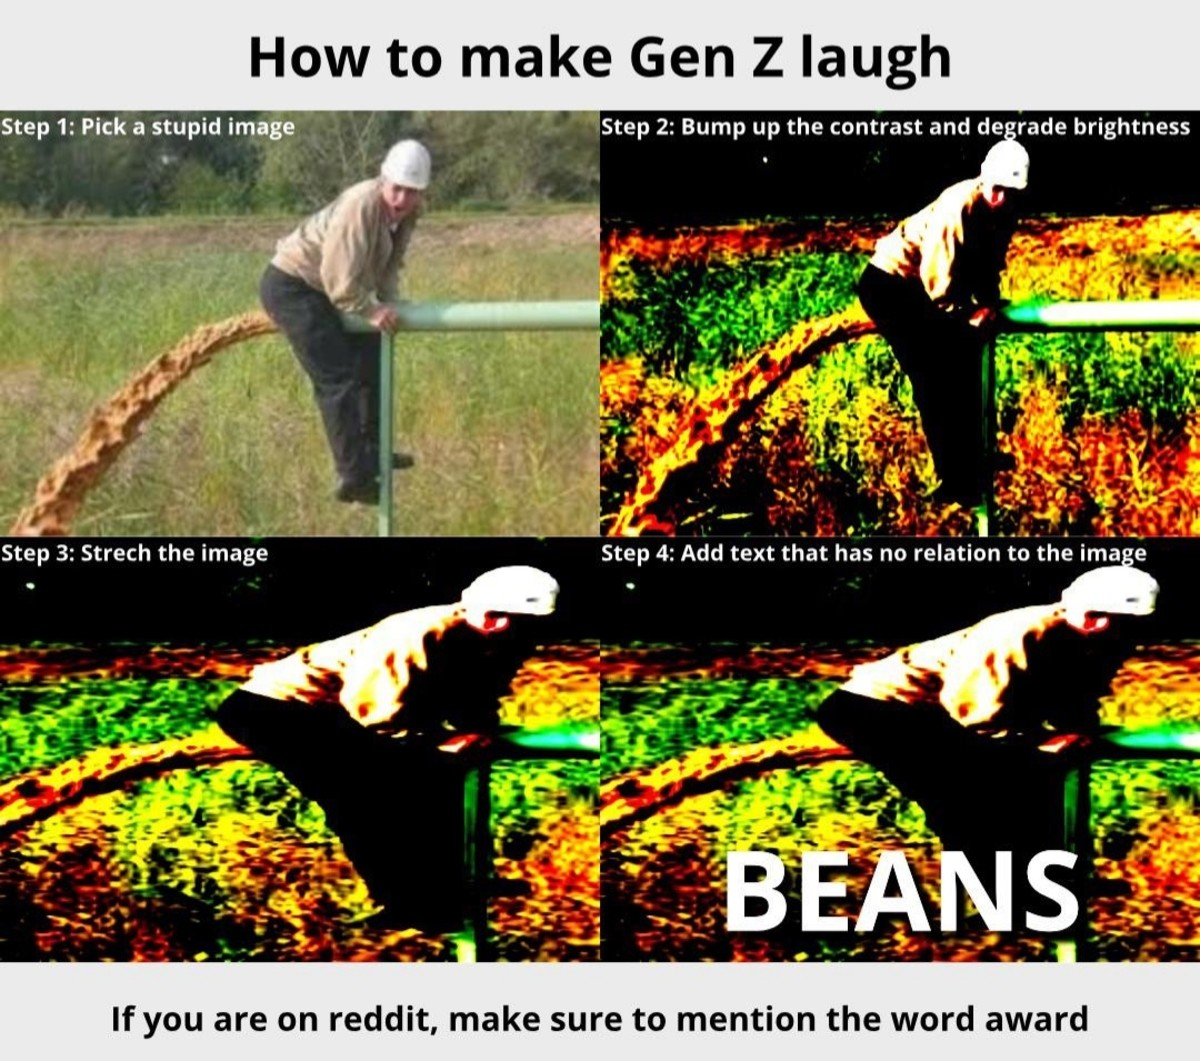 Eaten Beans. .. You said text that has no relation to the image, but the image looks like he's spraying diarrhea out his ass, and eating too many beans can give you bad diarrhe